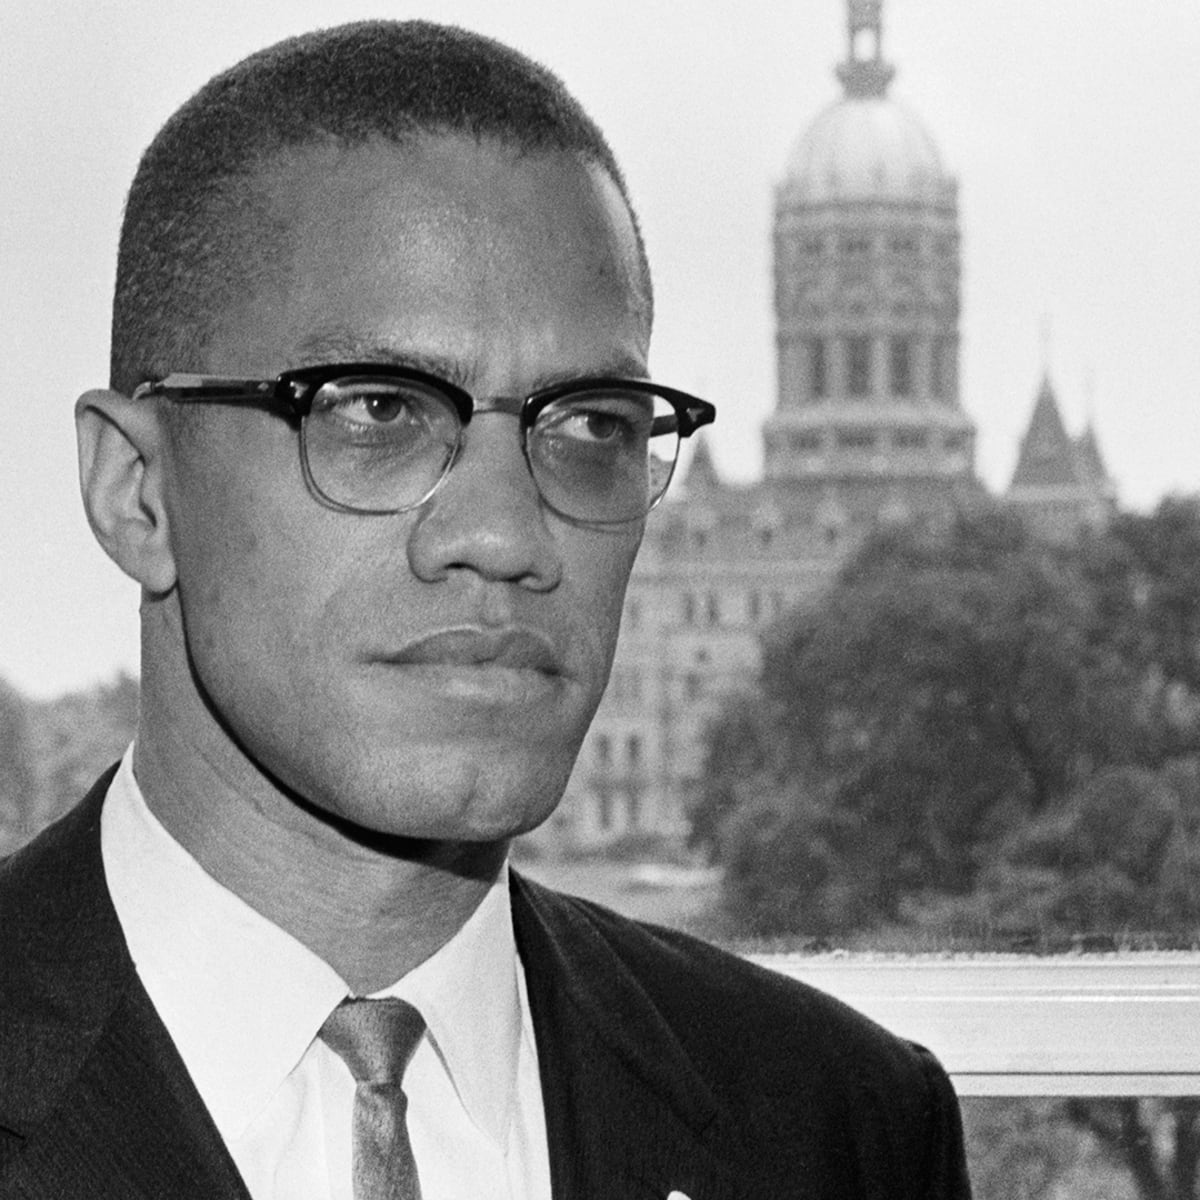 With due respect to Dr. King, to have men like those who rule this nation hear you, it is important to remember that Malcom X was a thinker who understood much about how this nations mechanisms and what needs to happen to move the all important needle. #GeorgeFloydProtests